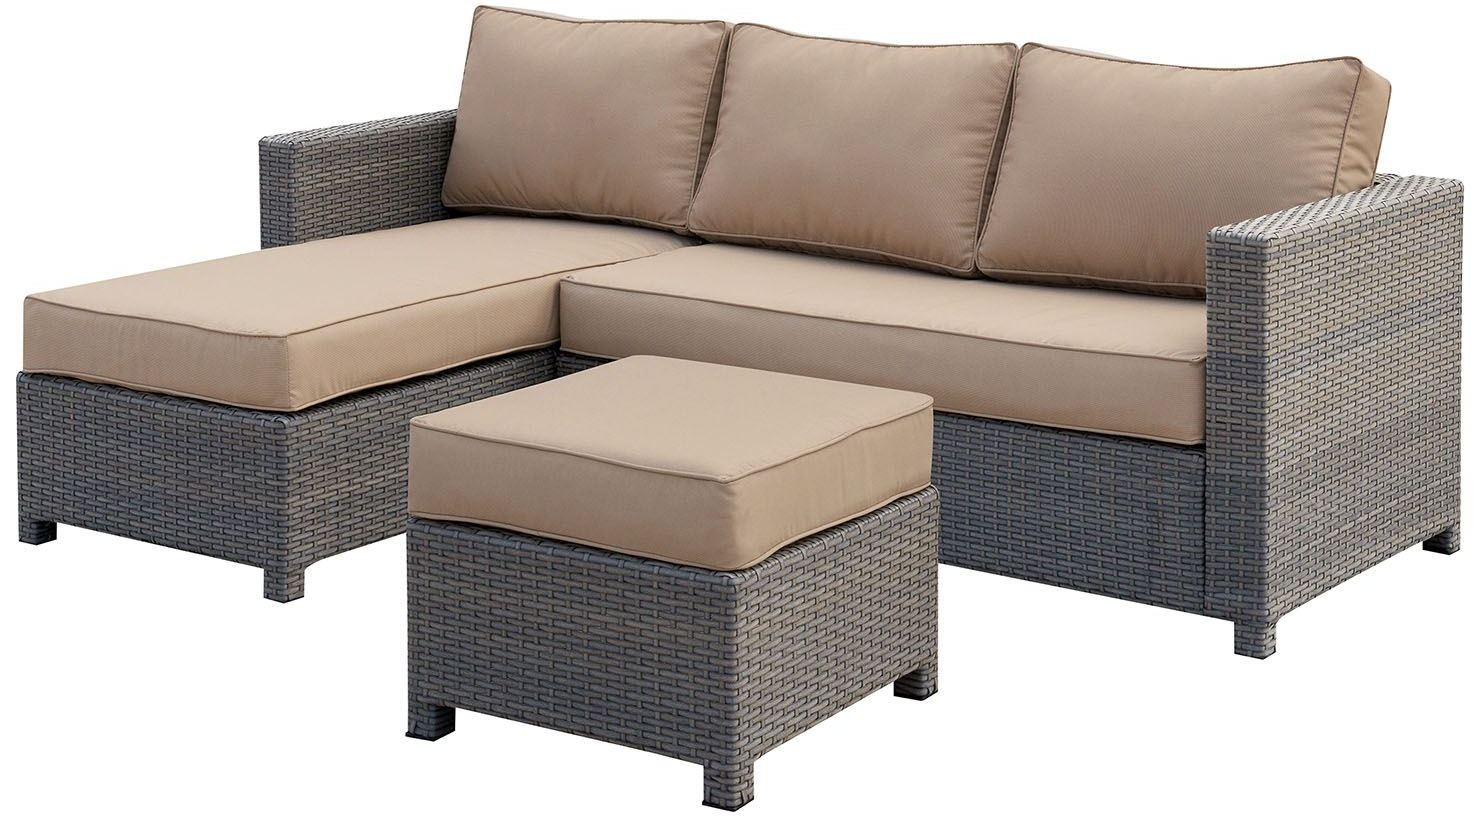 Sabina Tan And Dark Gray Patio Sectional With Ottoman From